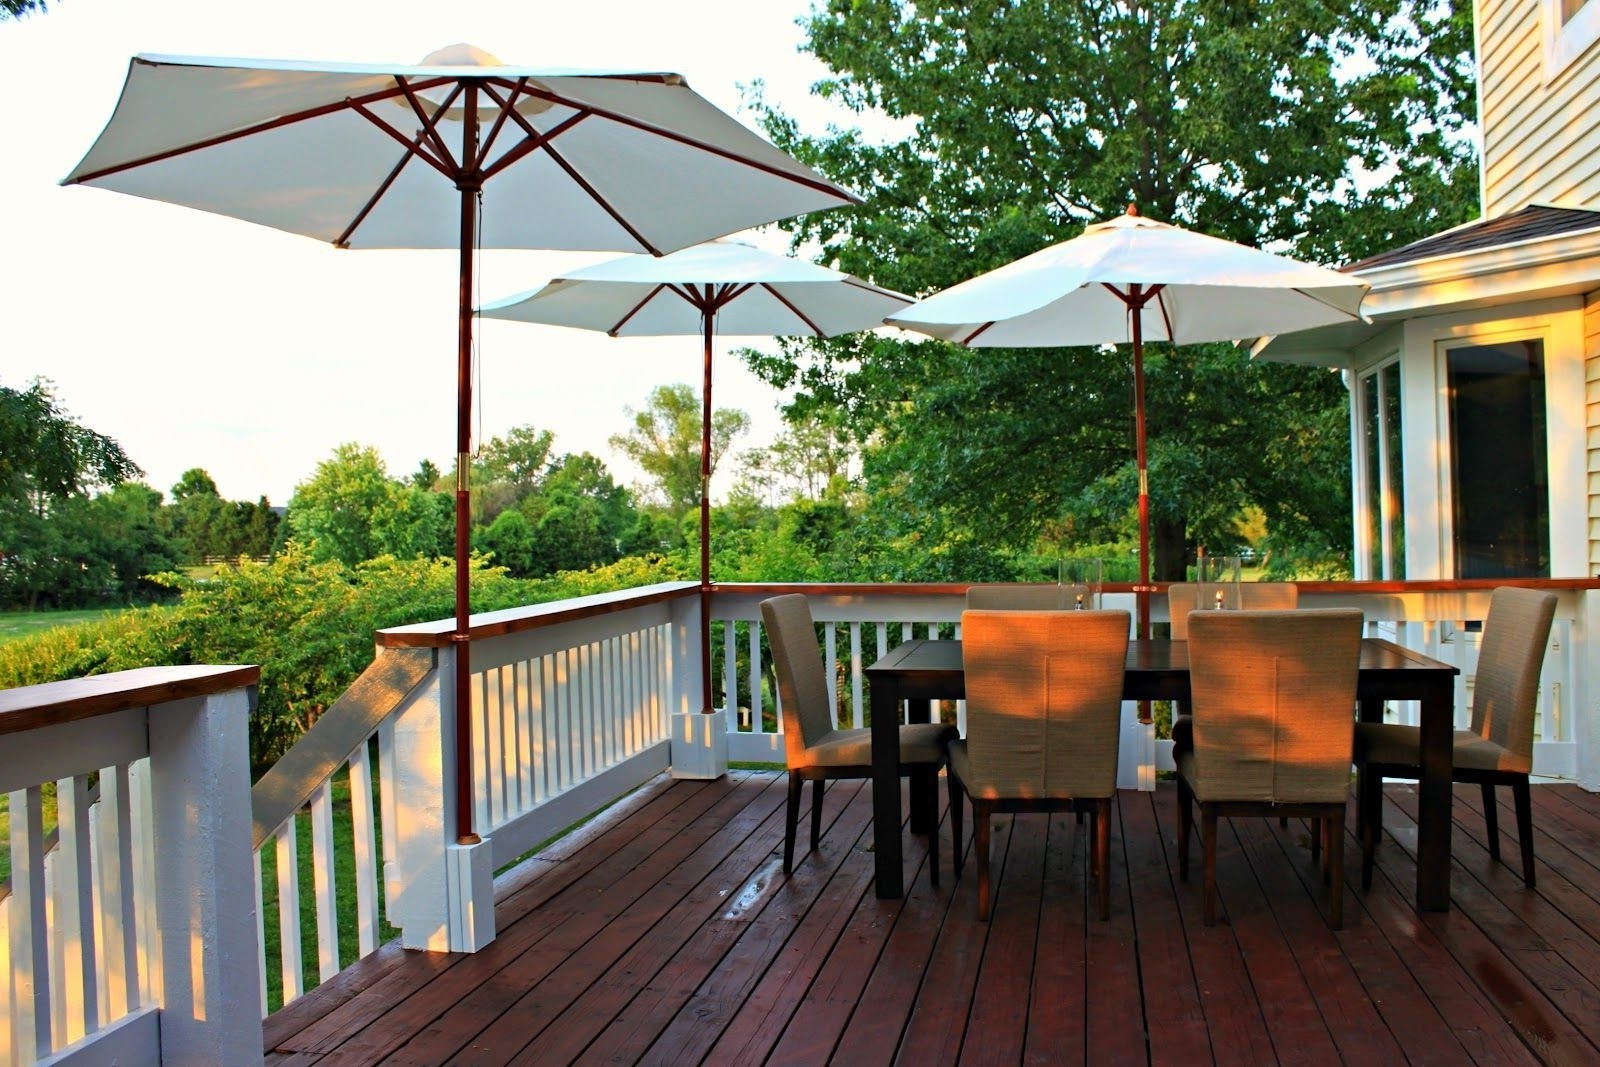 Recent Extended Patio Umbrellas For Image Result For How To Attach Patio Umbrella To Fence (Gallery 14 of 20)